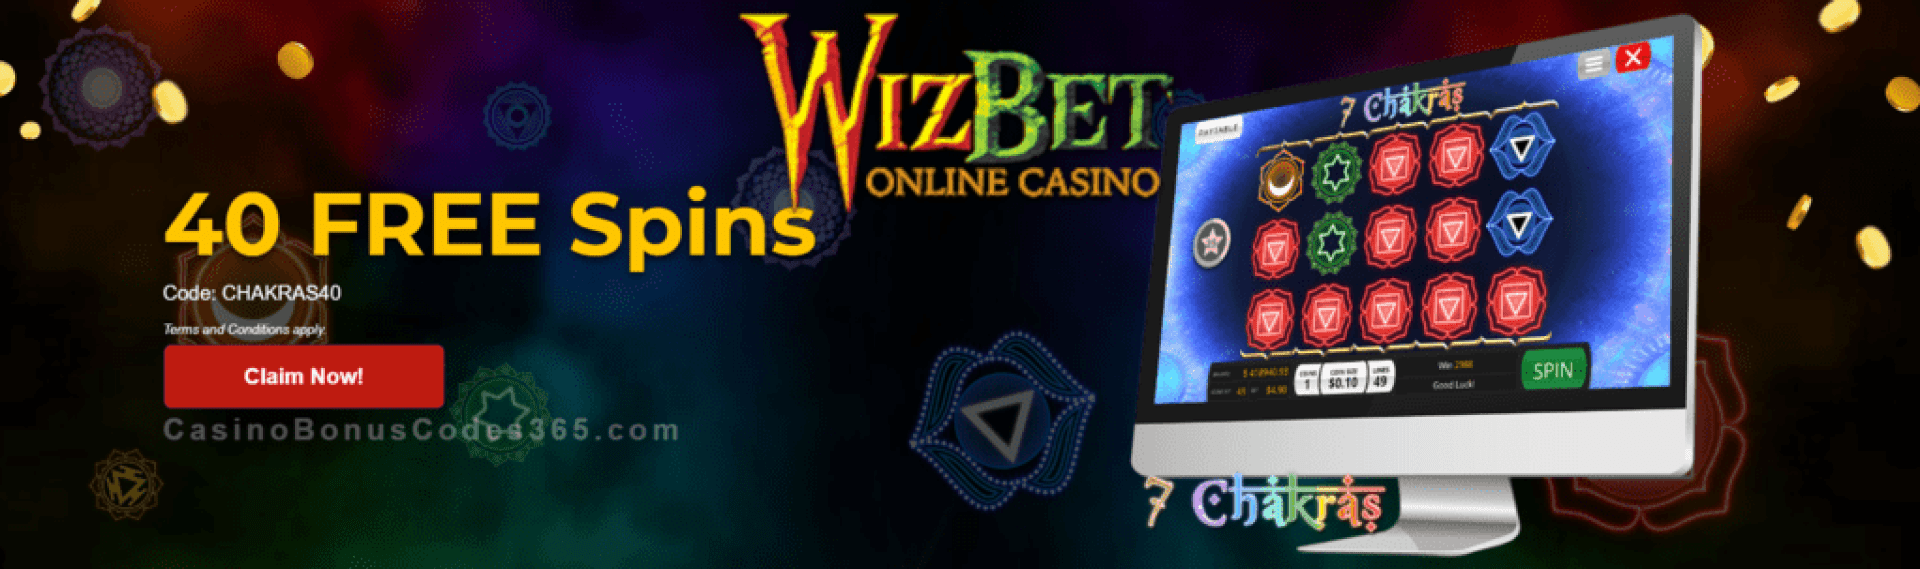 WizBet Online Casino 40 FREE Saucify 7 Chakras Spins Exclusive Deal